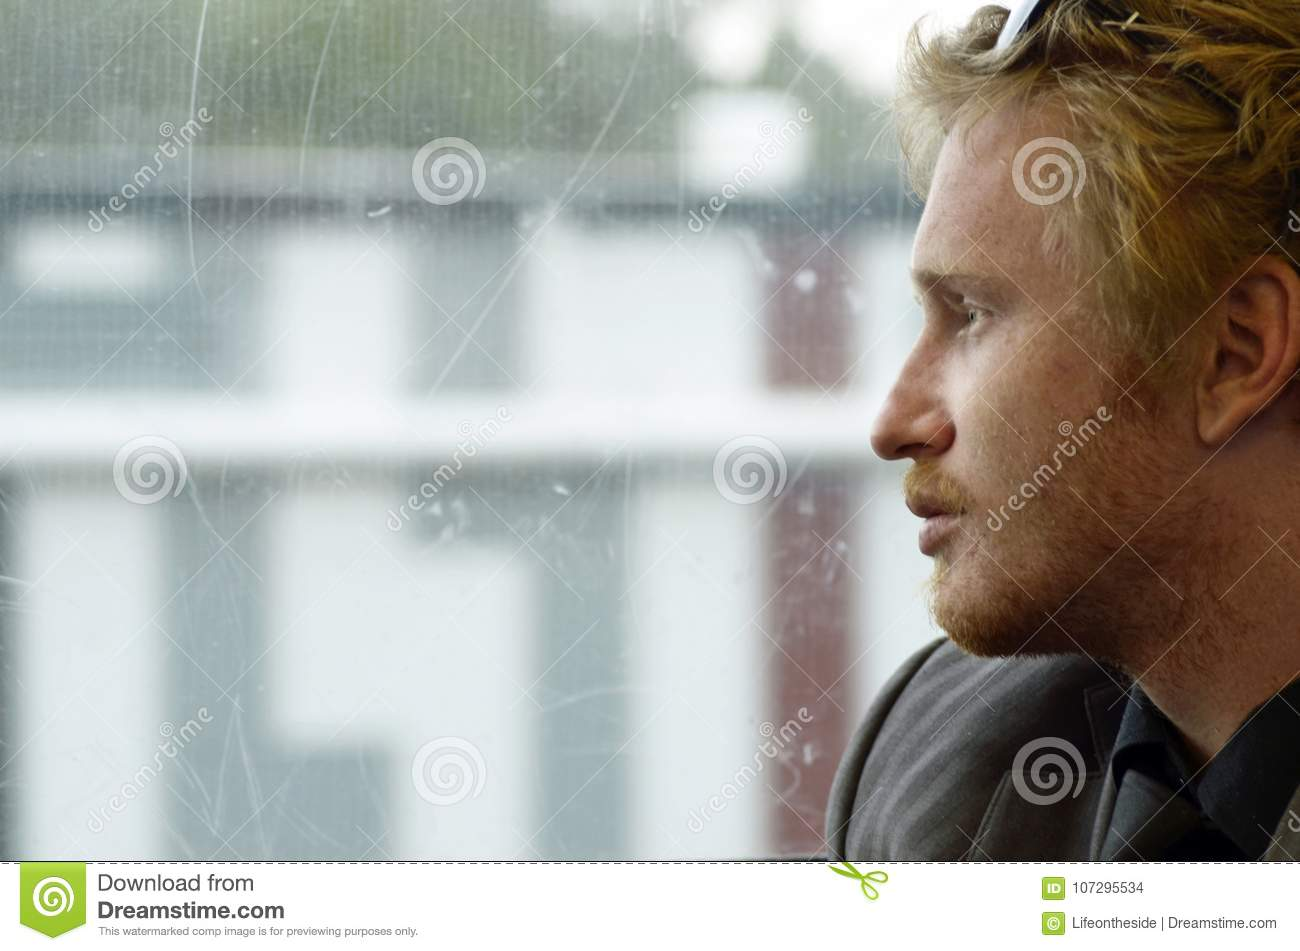 Young depressed man reflecting on life journey soul searching